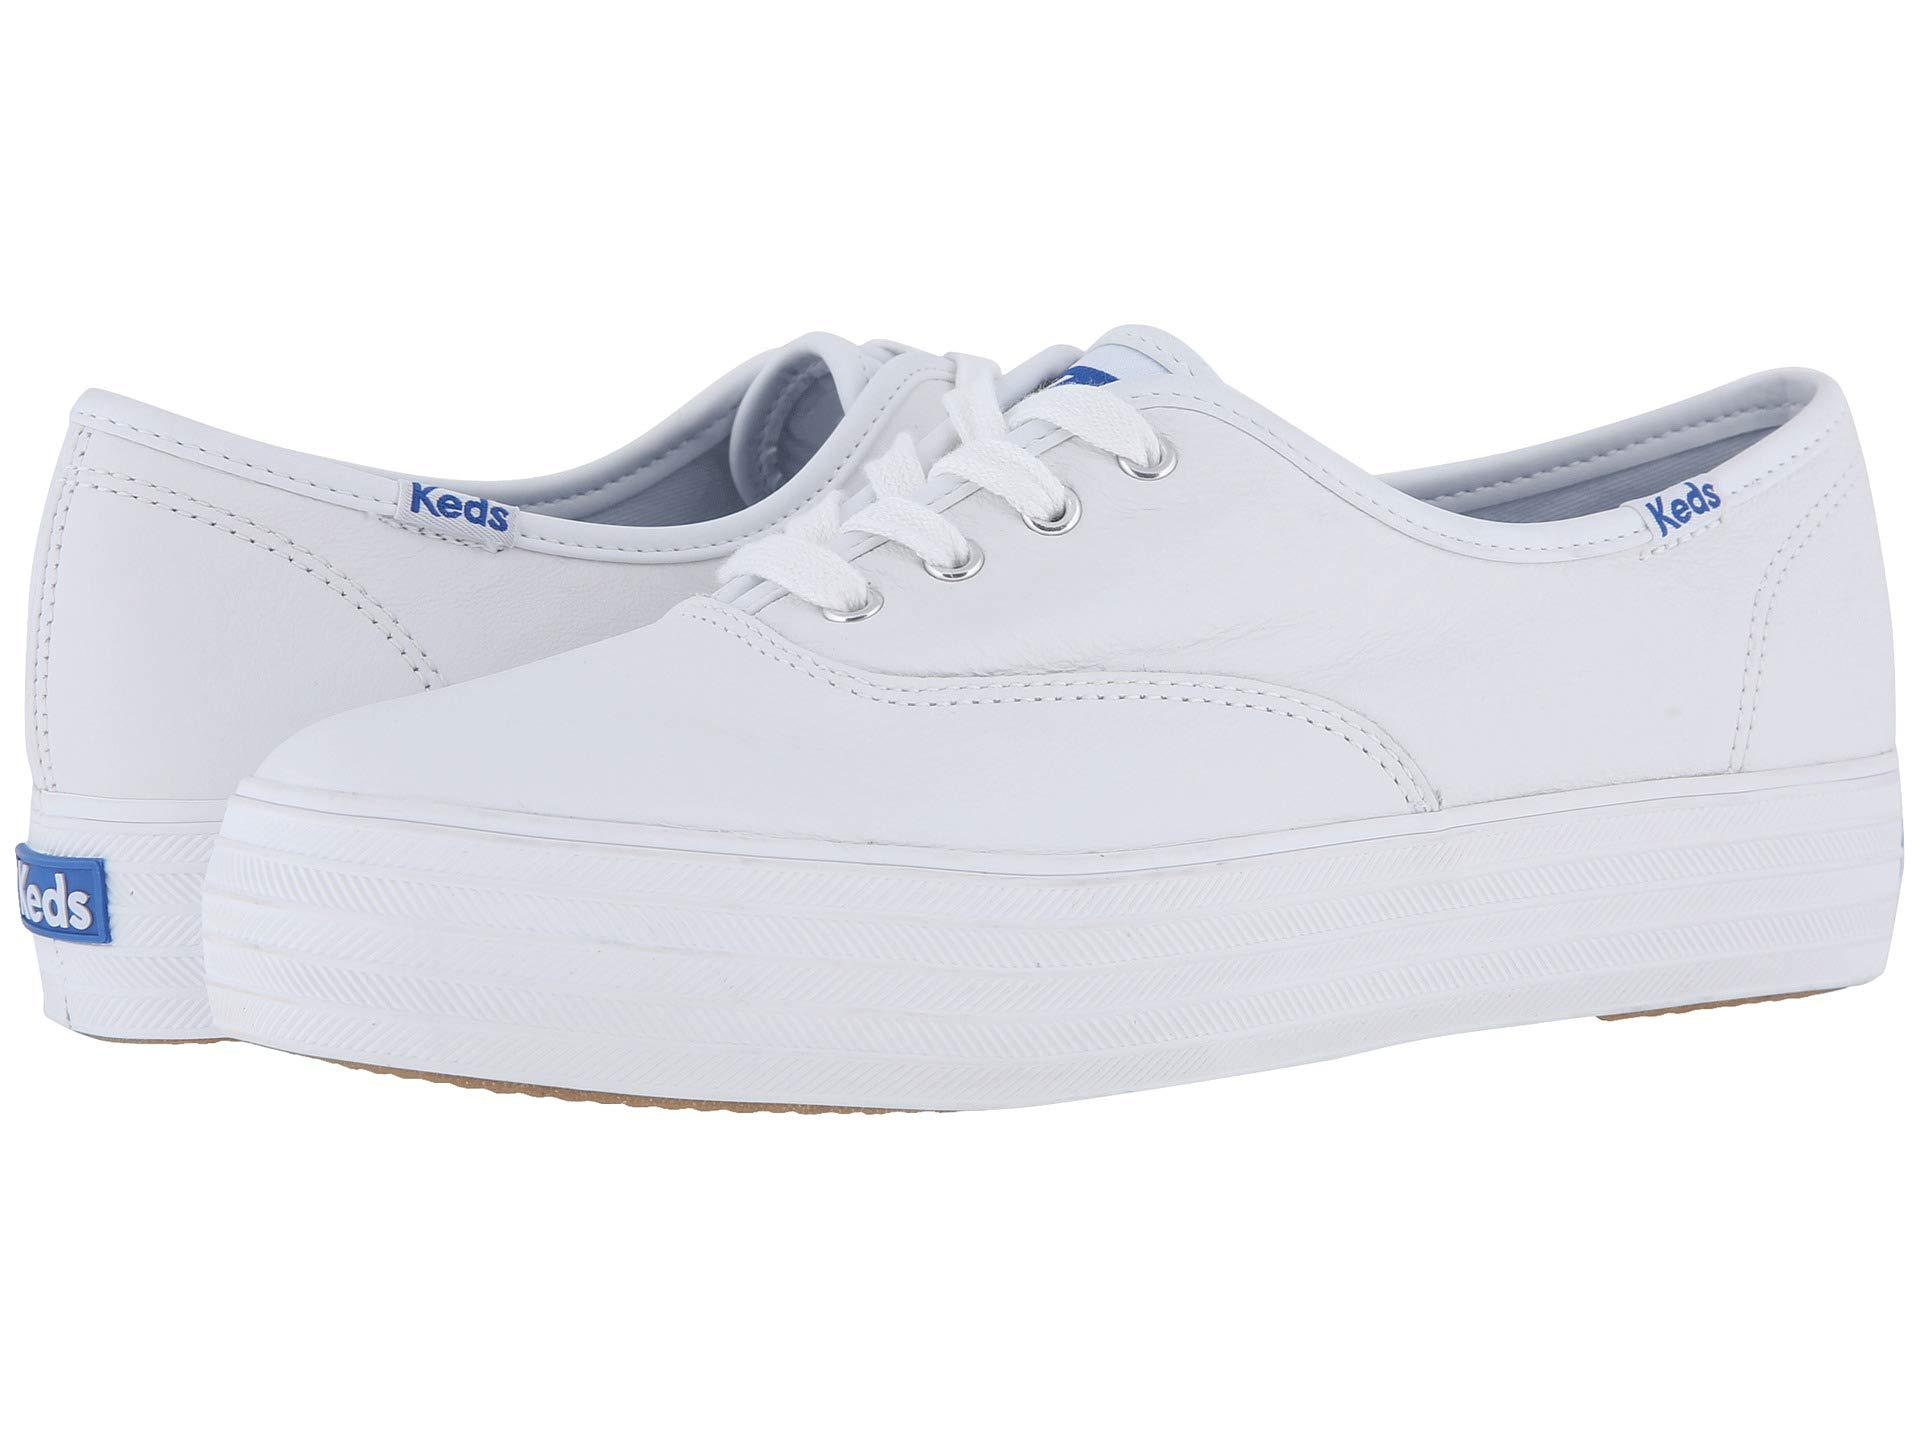 2112d5b4ff48 Lyst - Keds Triple Leather (white) Women s Lace Up Casual Shoes in White